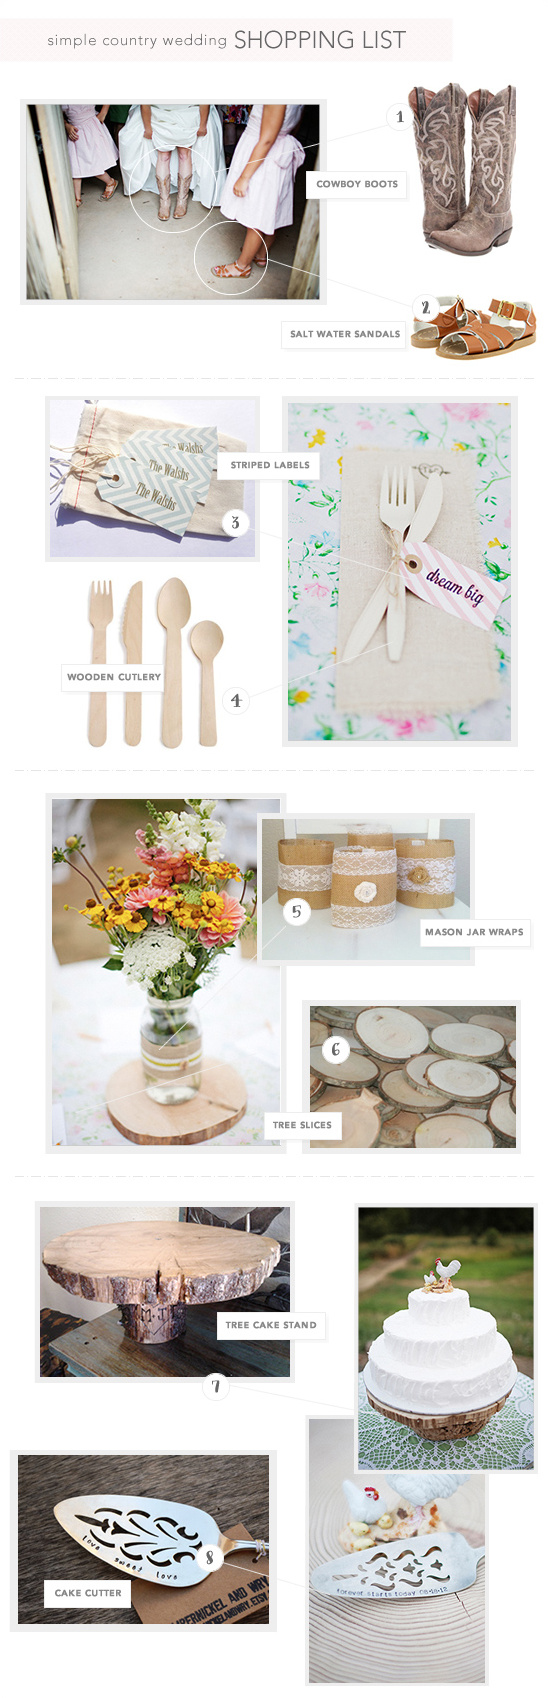 Shopping List For A Simple Country Wedding